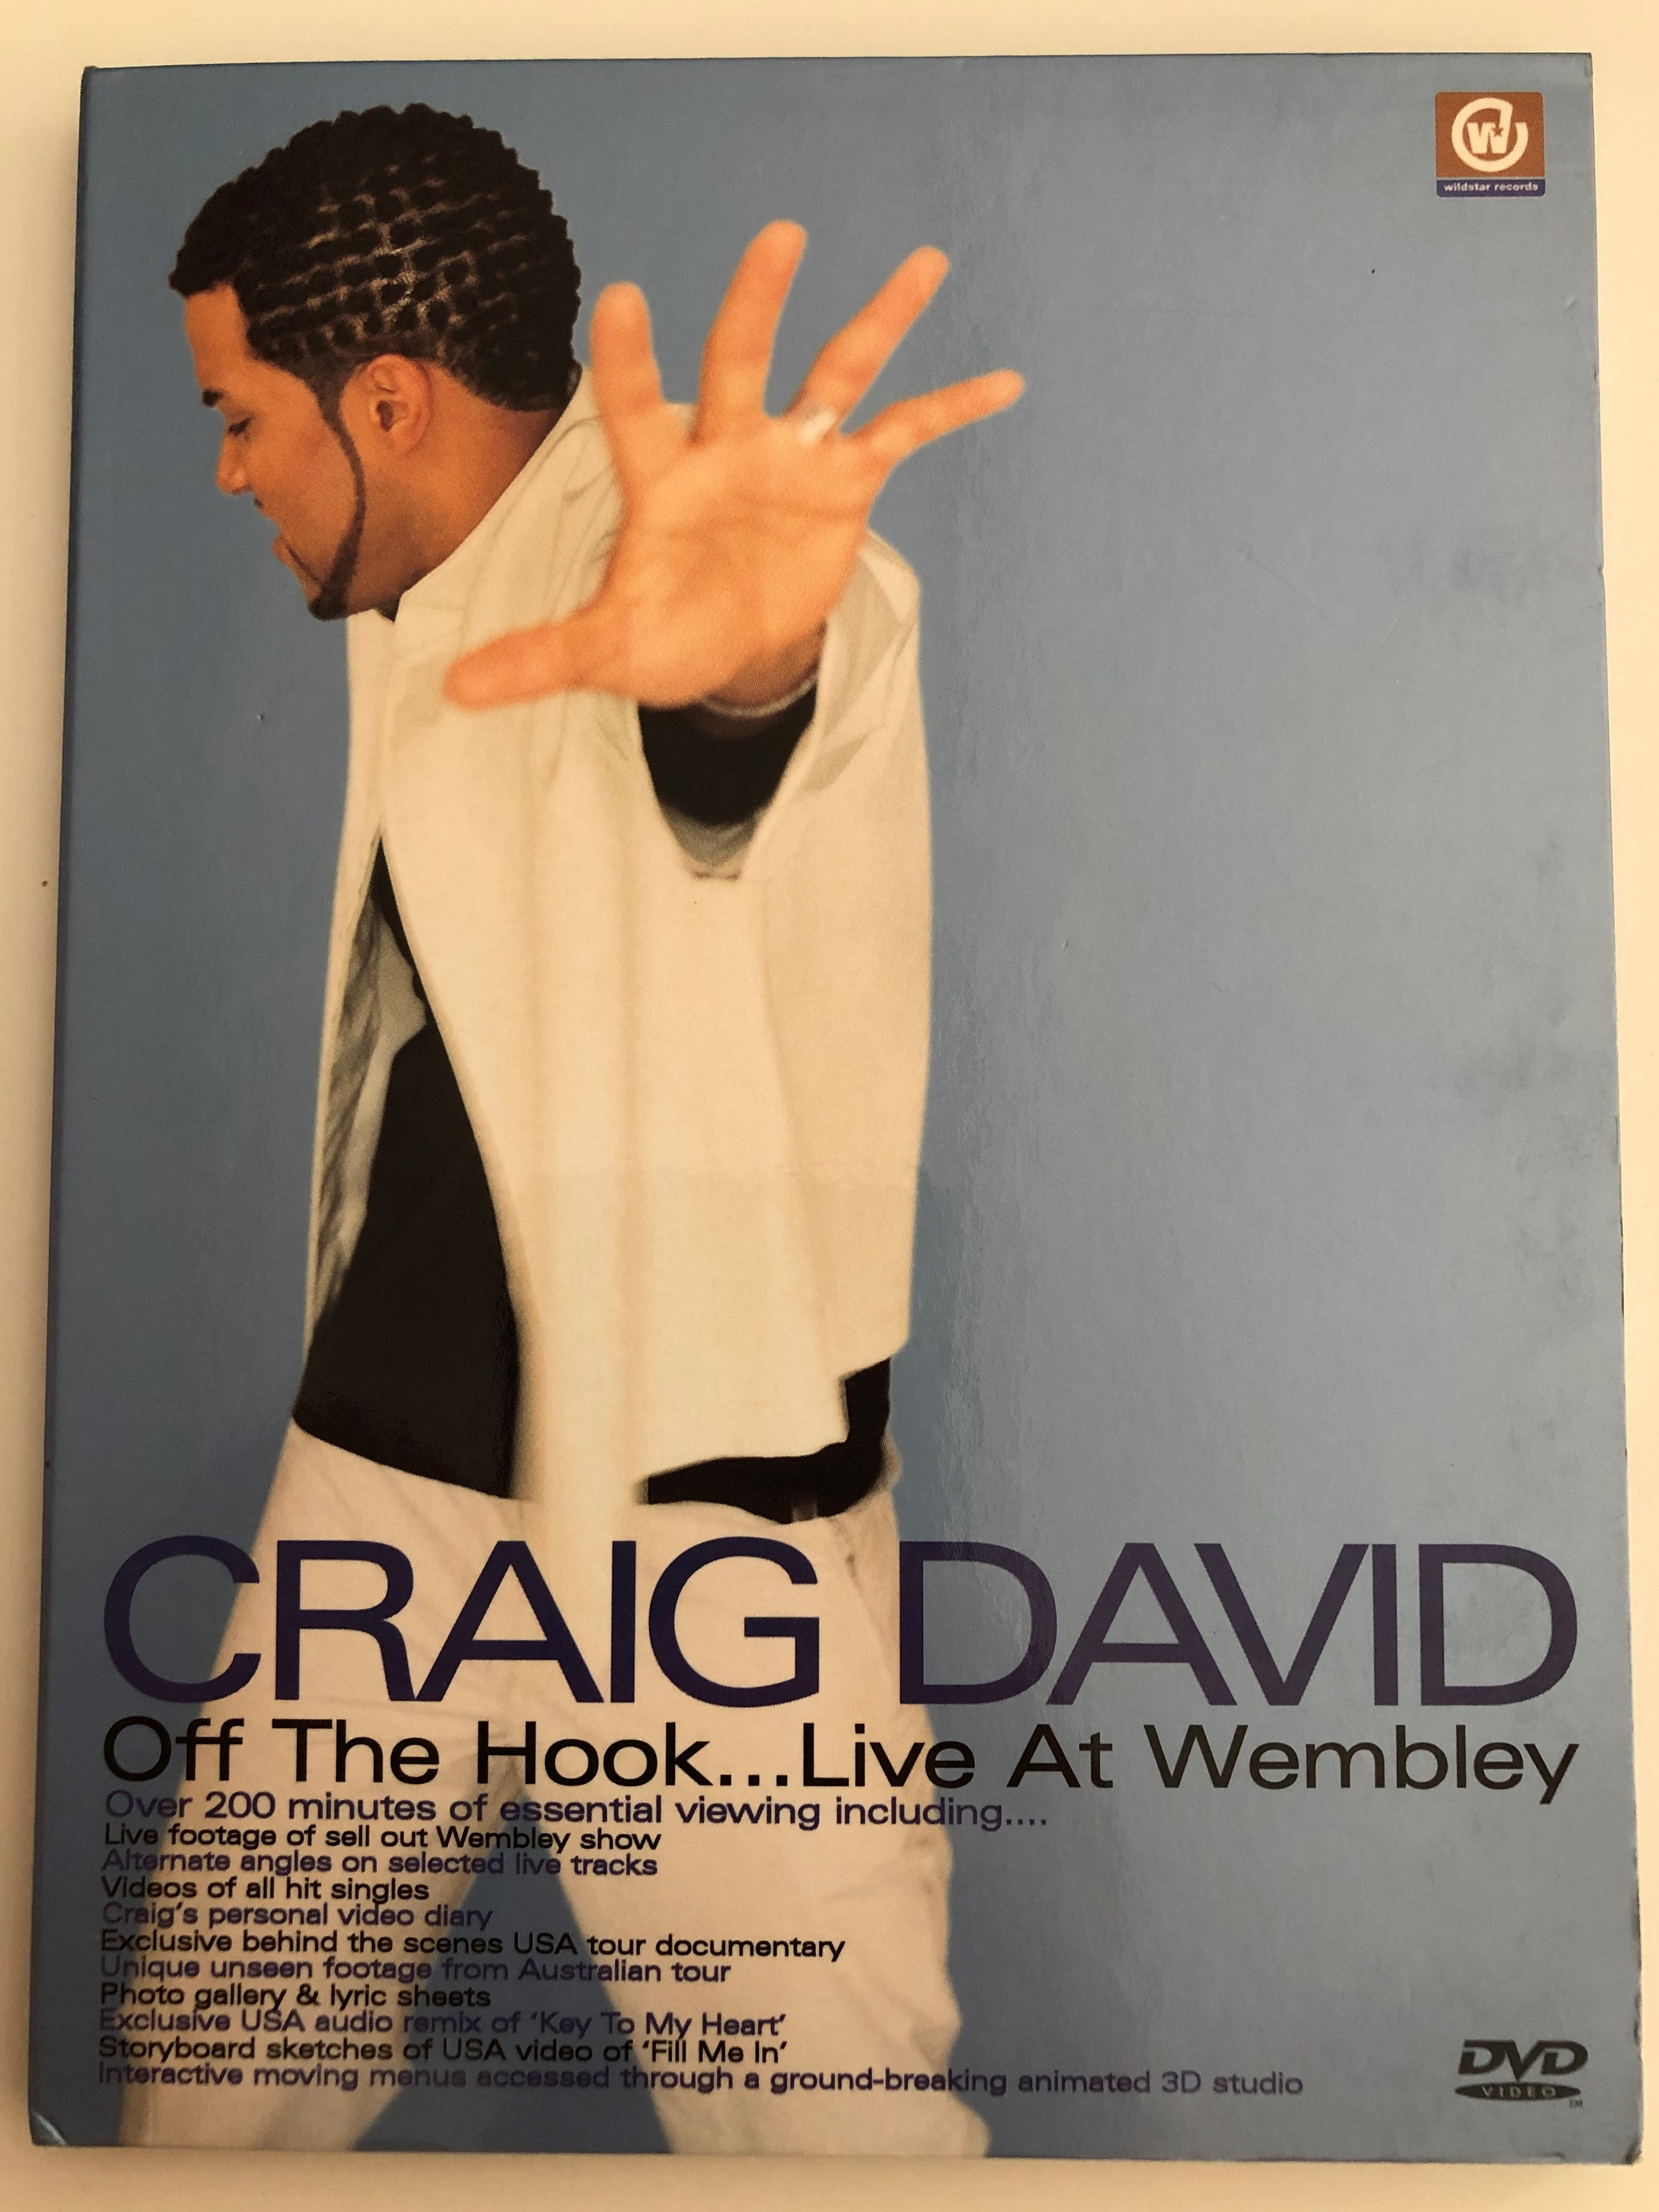 craig-david-off-the-hook-live-at-wembley-dvd-2001-over-200-minutes-of-essential-viewing-1-.jpg